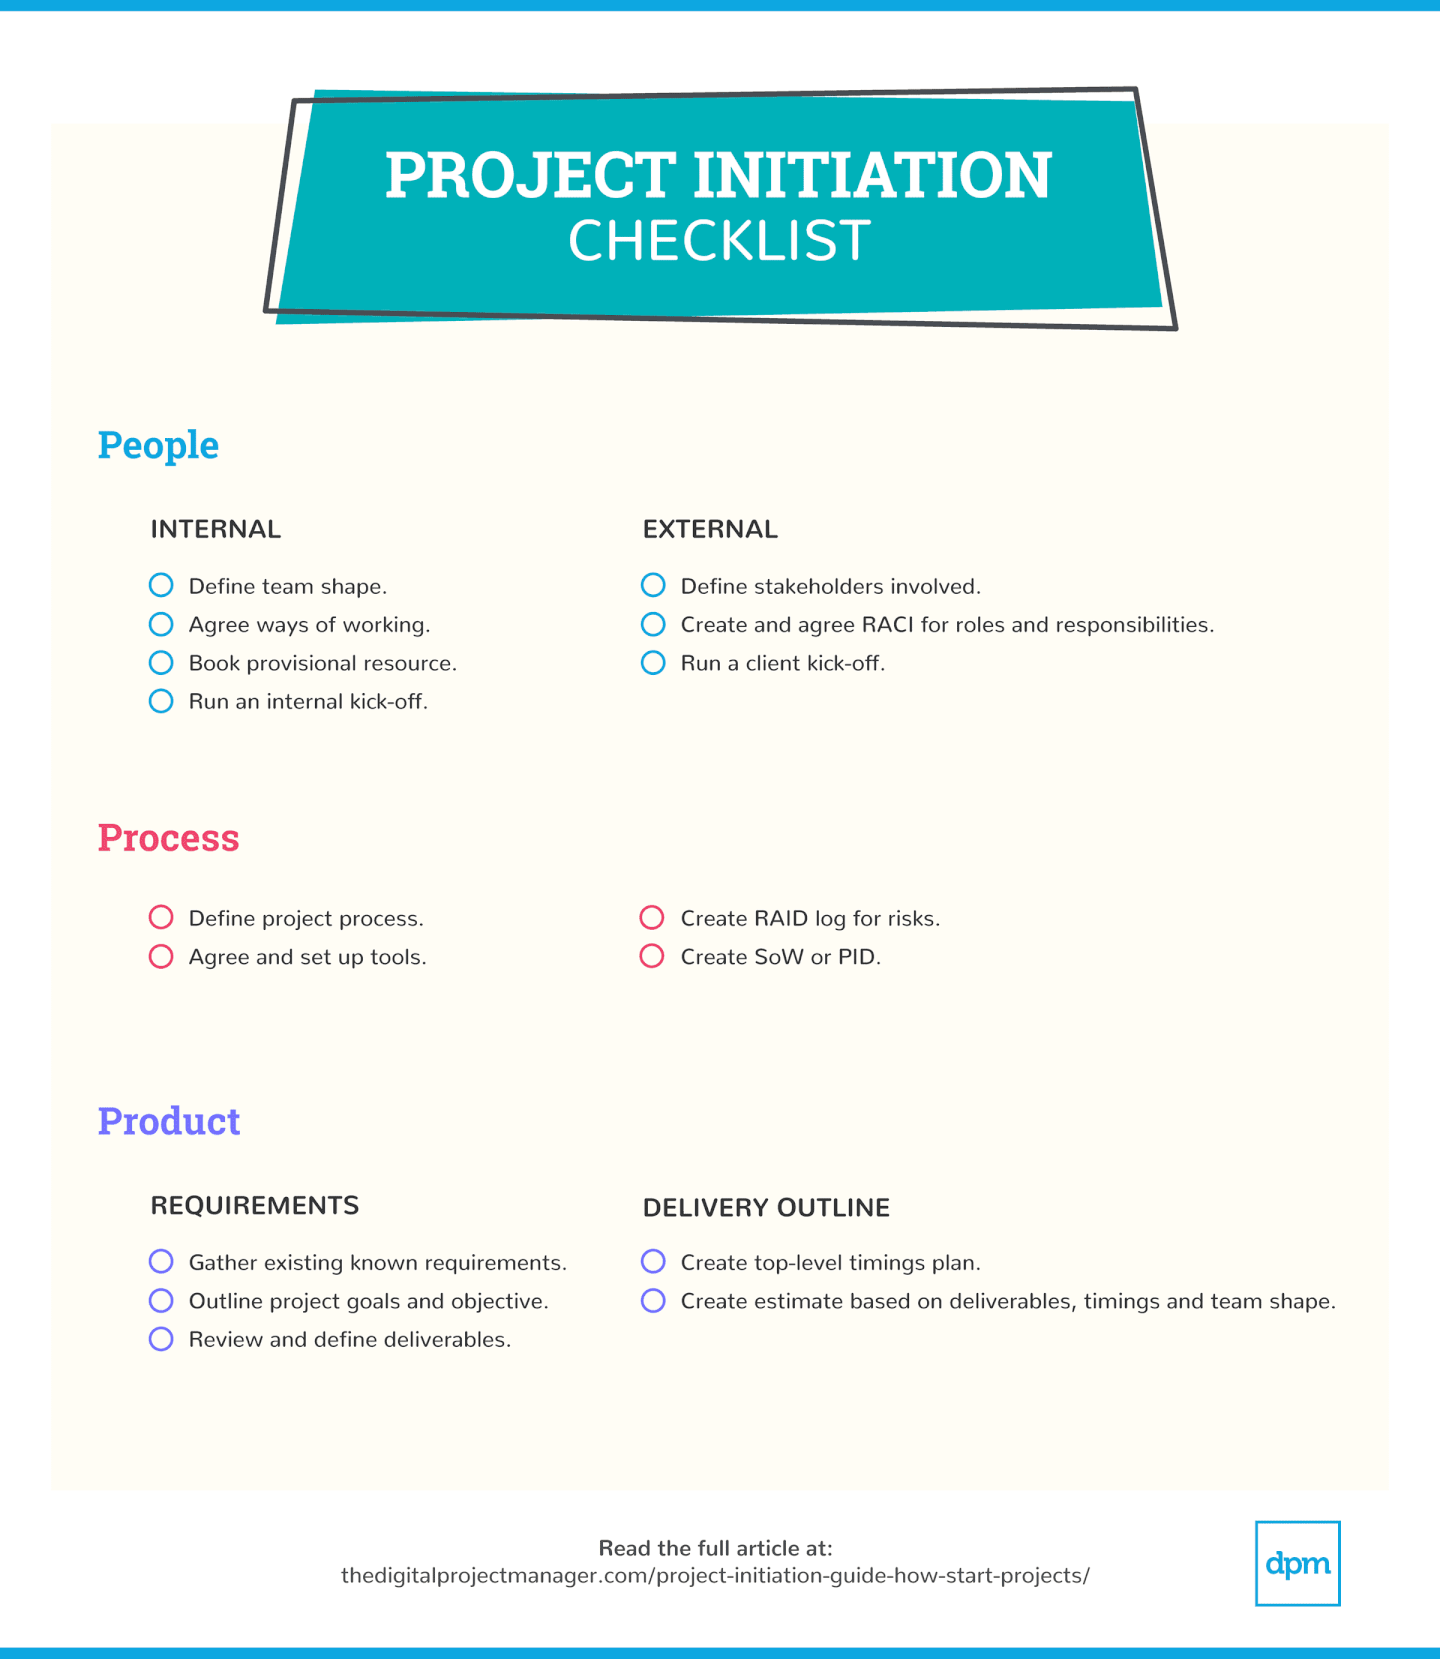 How to start a project - project initiation checklist